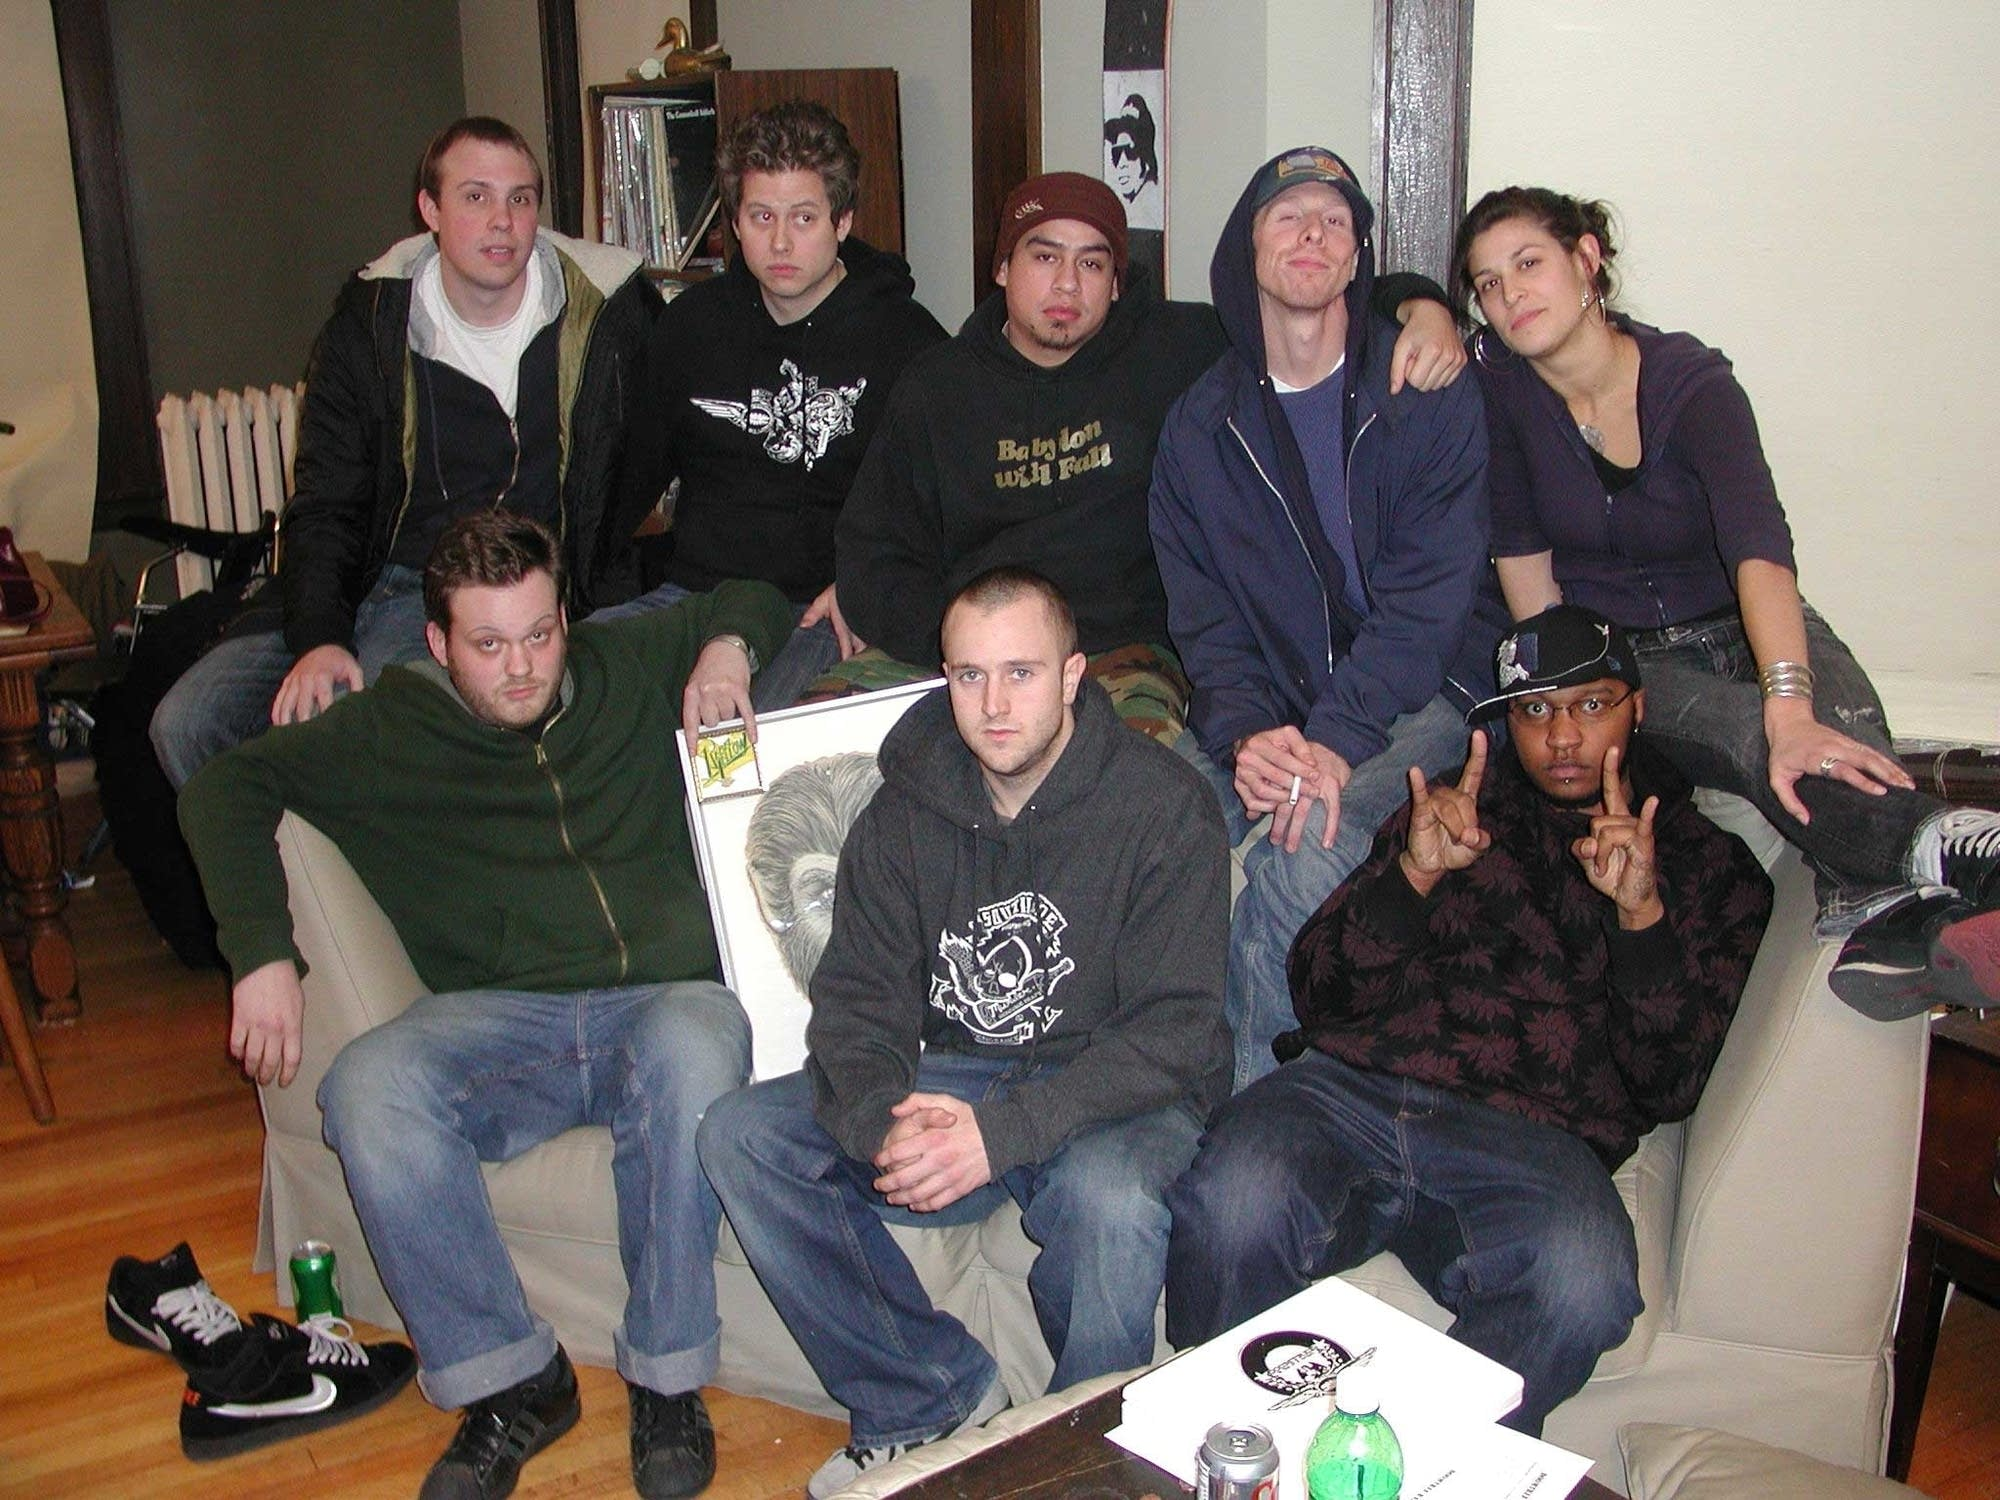 Members of Doomtree